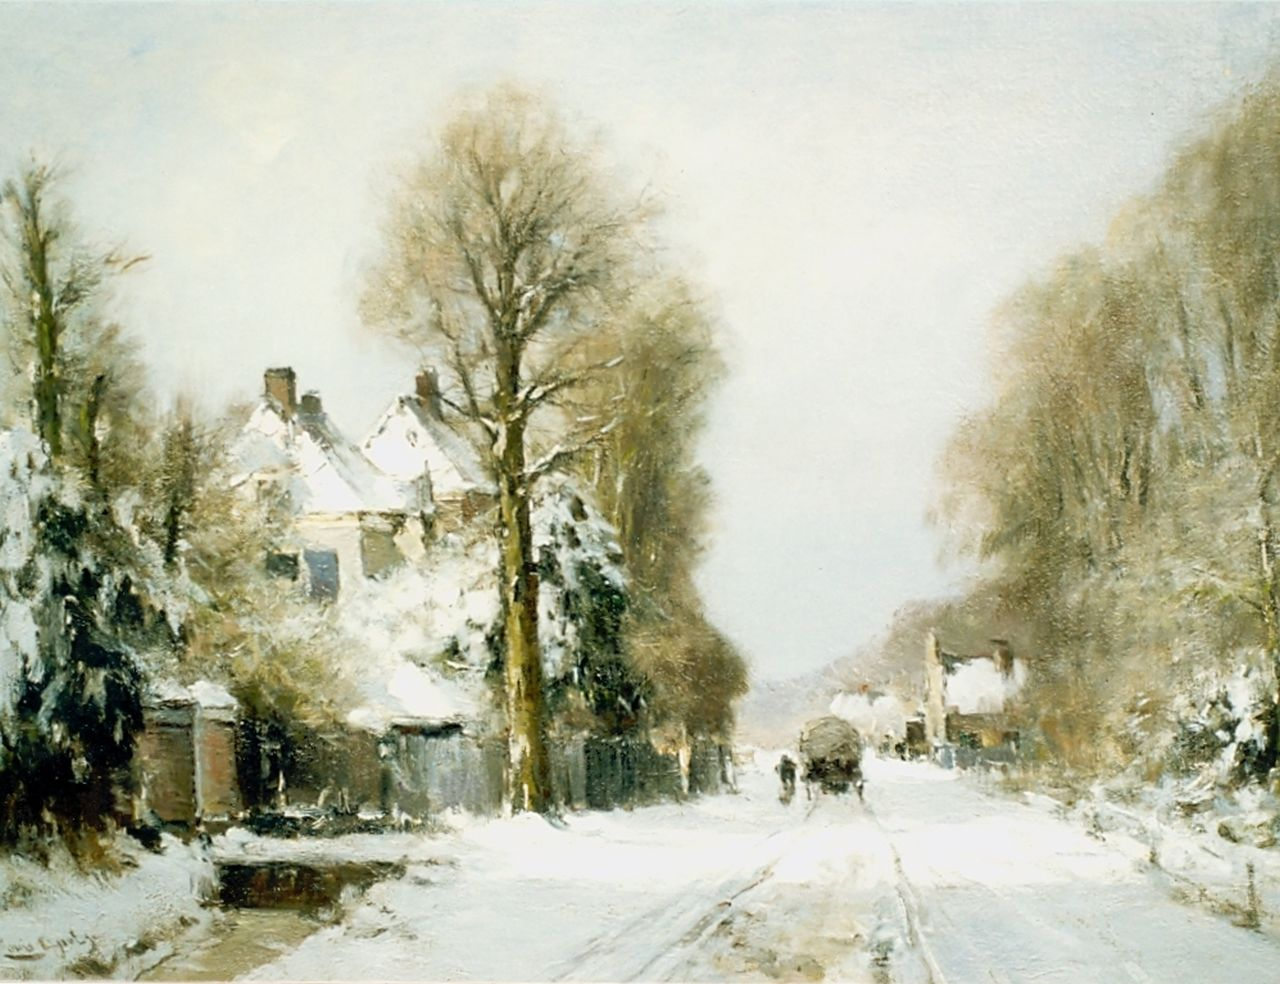 Apol L.F.H.  | Lodewijk Franciscus Hendrik 'Louis' Apol, View of the Rijksstraatweg in winter, The Hague, oil on canvas 55.0 x 76.5 cm, signed l.l.